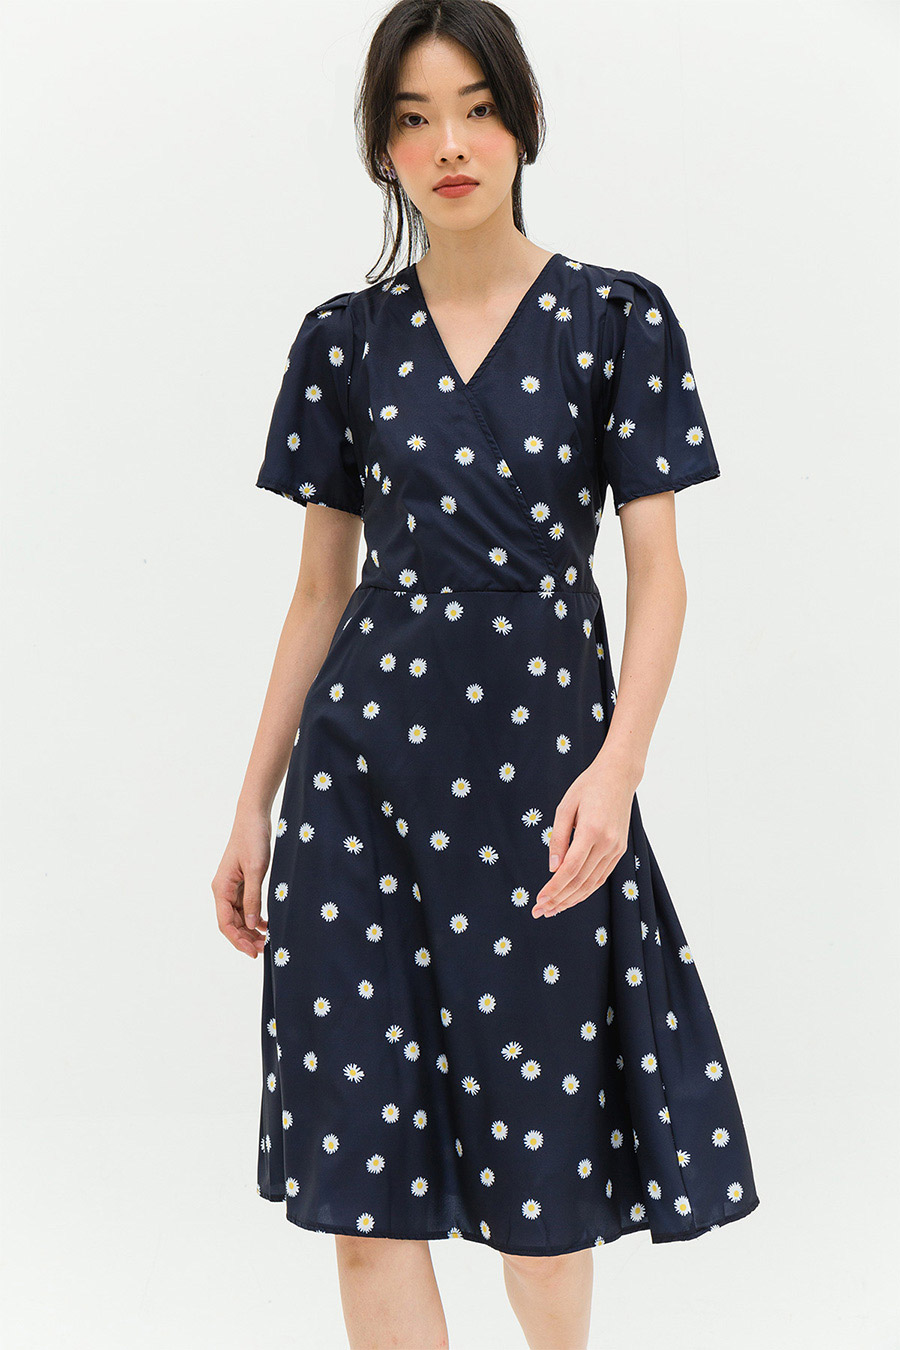 CLAUDETTE DRESS - OXFORD DAISY